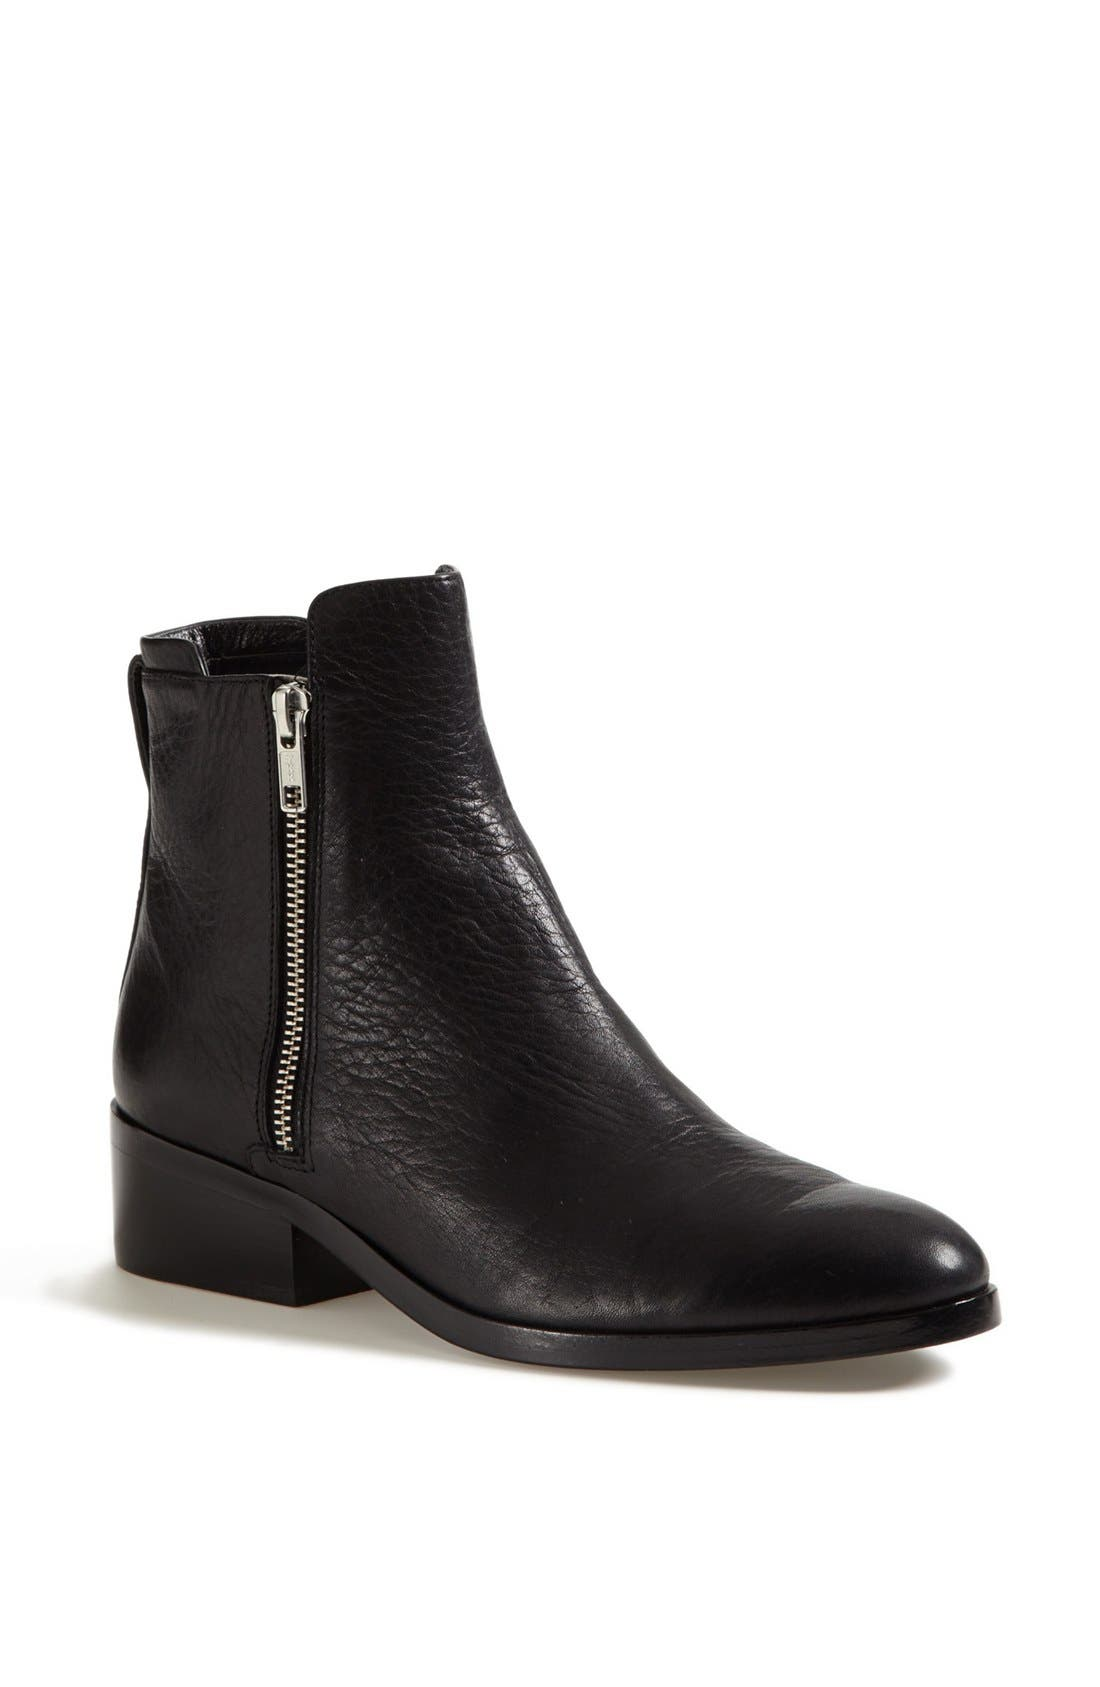 Alternate Image 1 Selected - 3.1 Phillip Lim 'Alexa' Boot